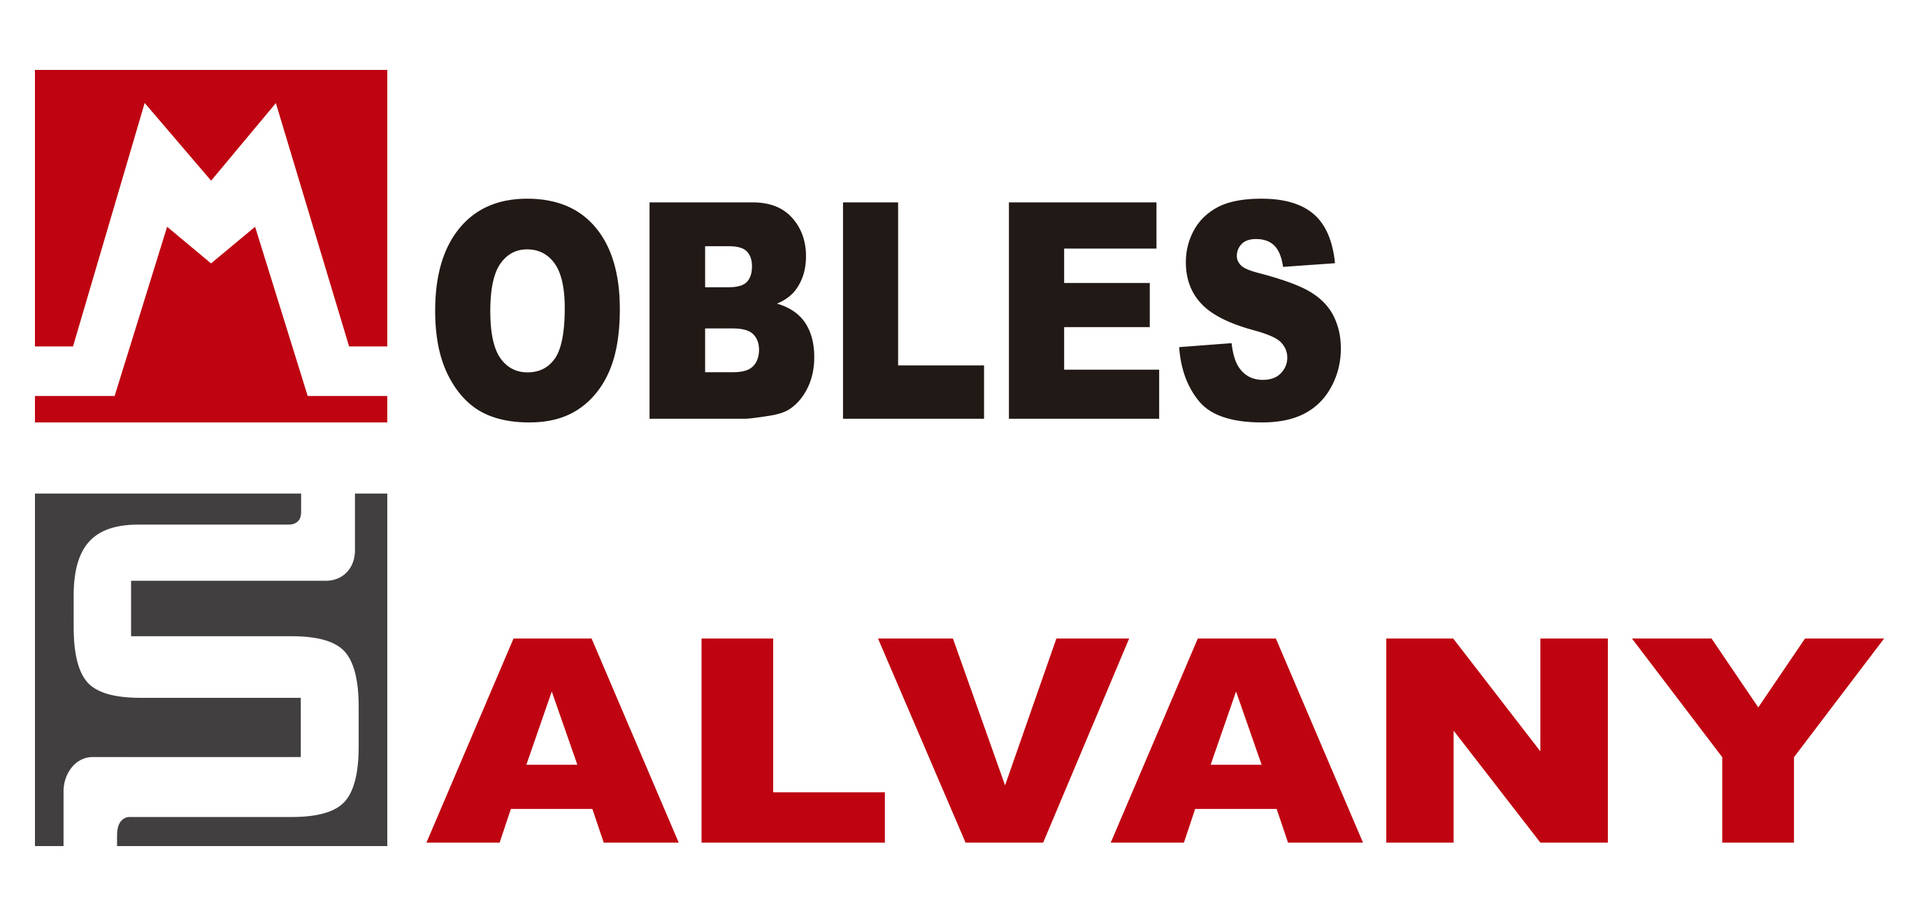 Mobles Salvany